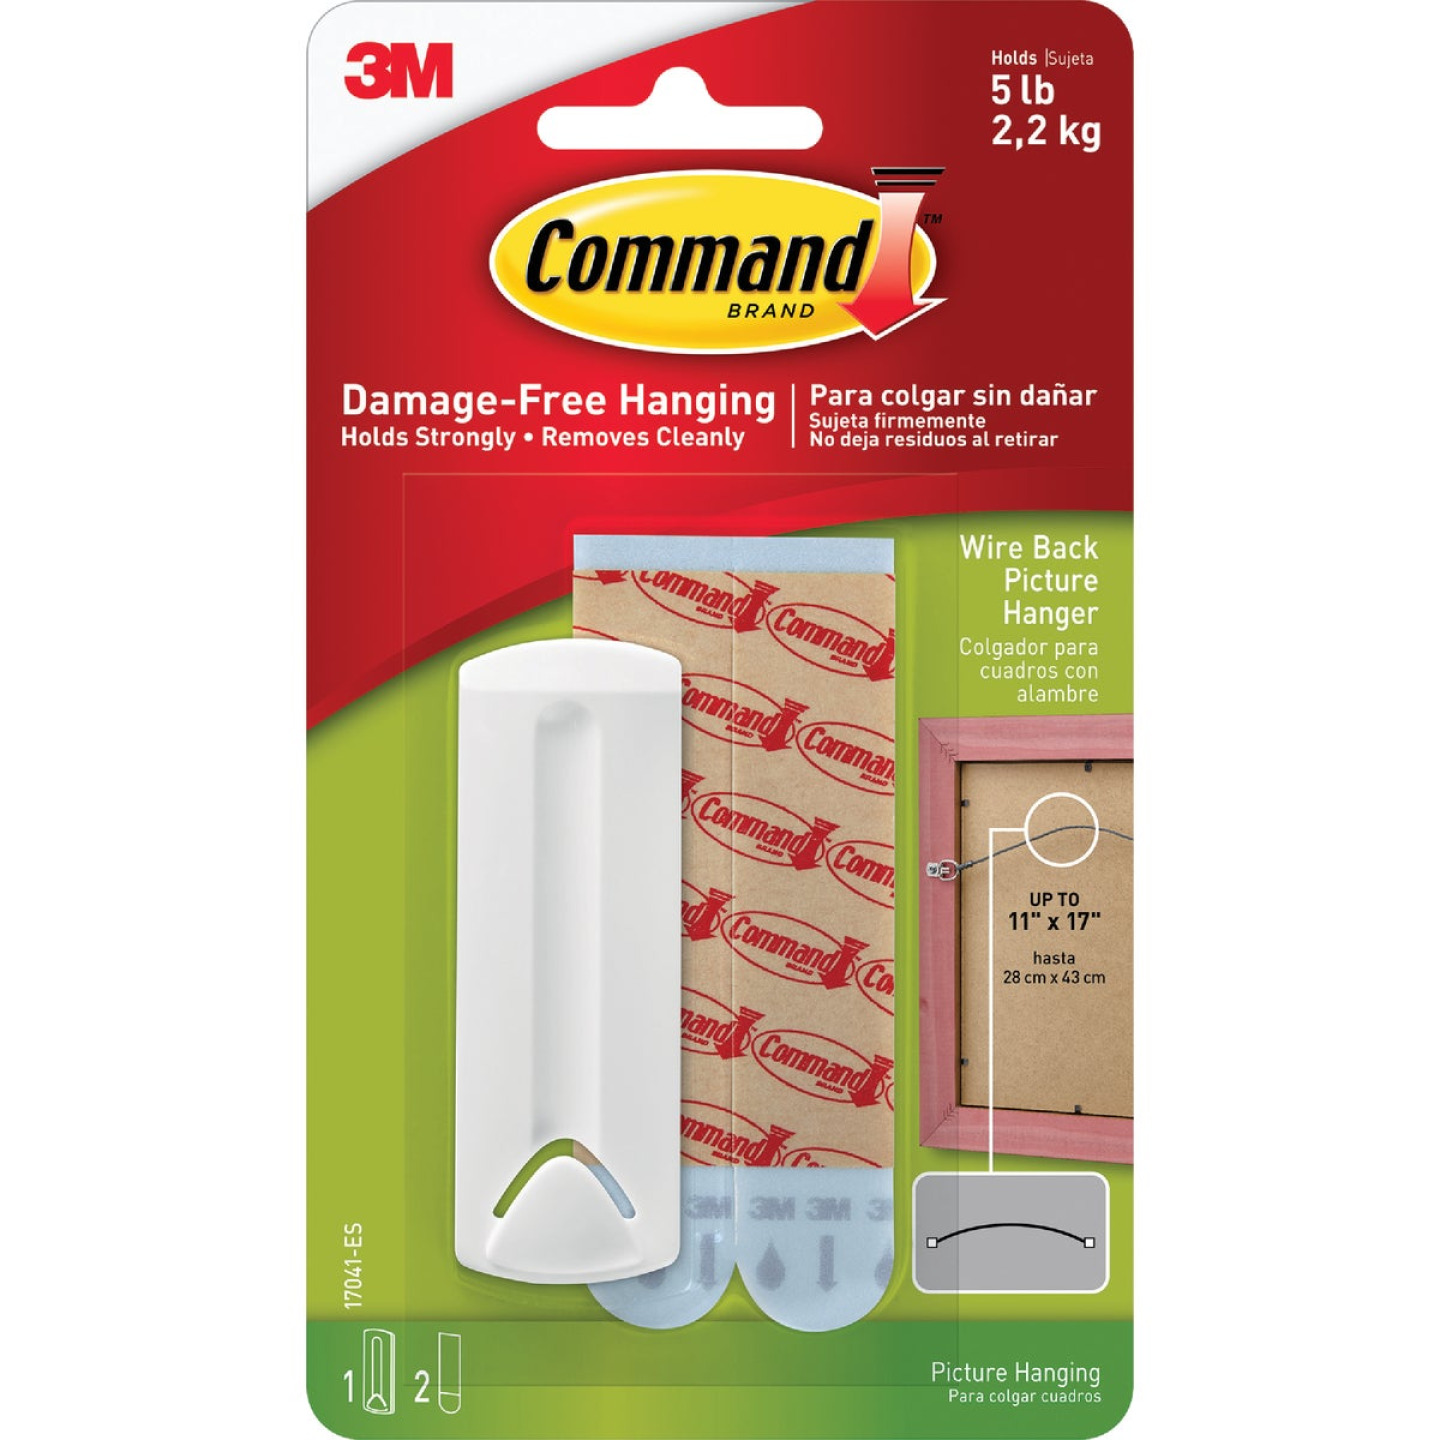 Command Adhesive Picture Hanger Image 2